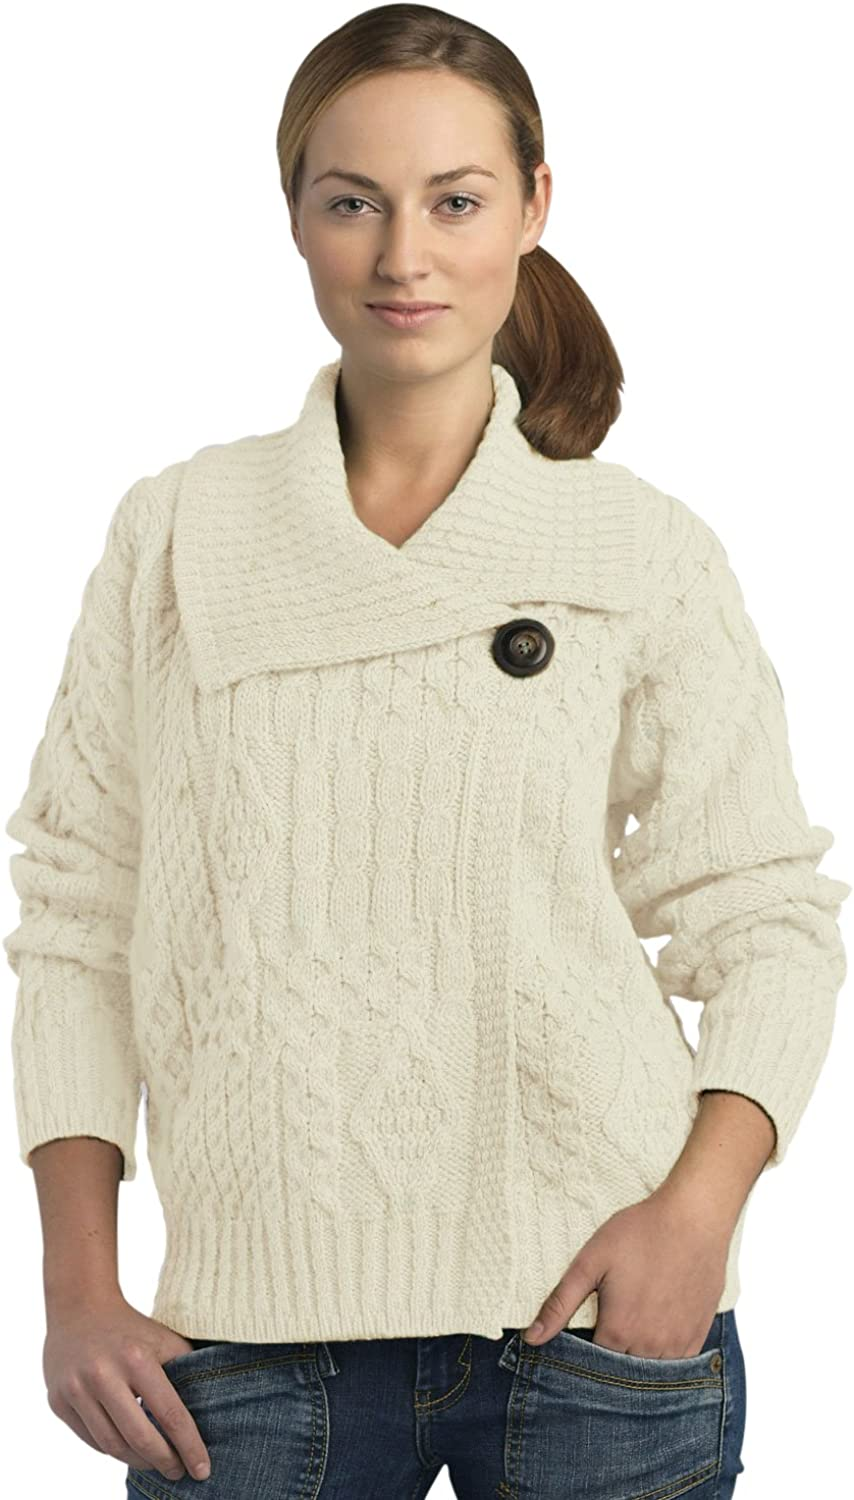 100% Soft Irish Merino Wool One Button Aran Ladies Sweater by West End Knitwear (Small, Natural)